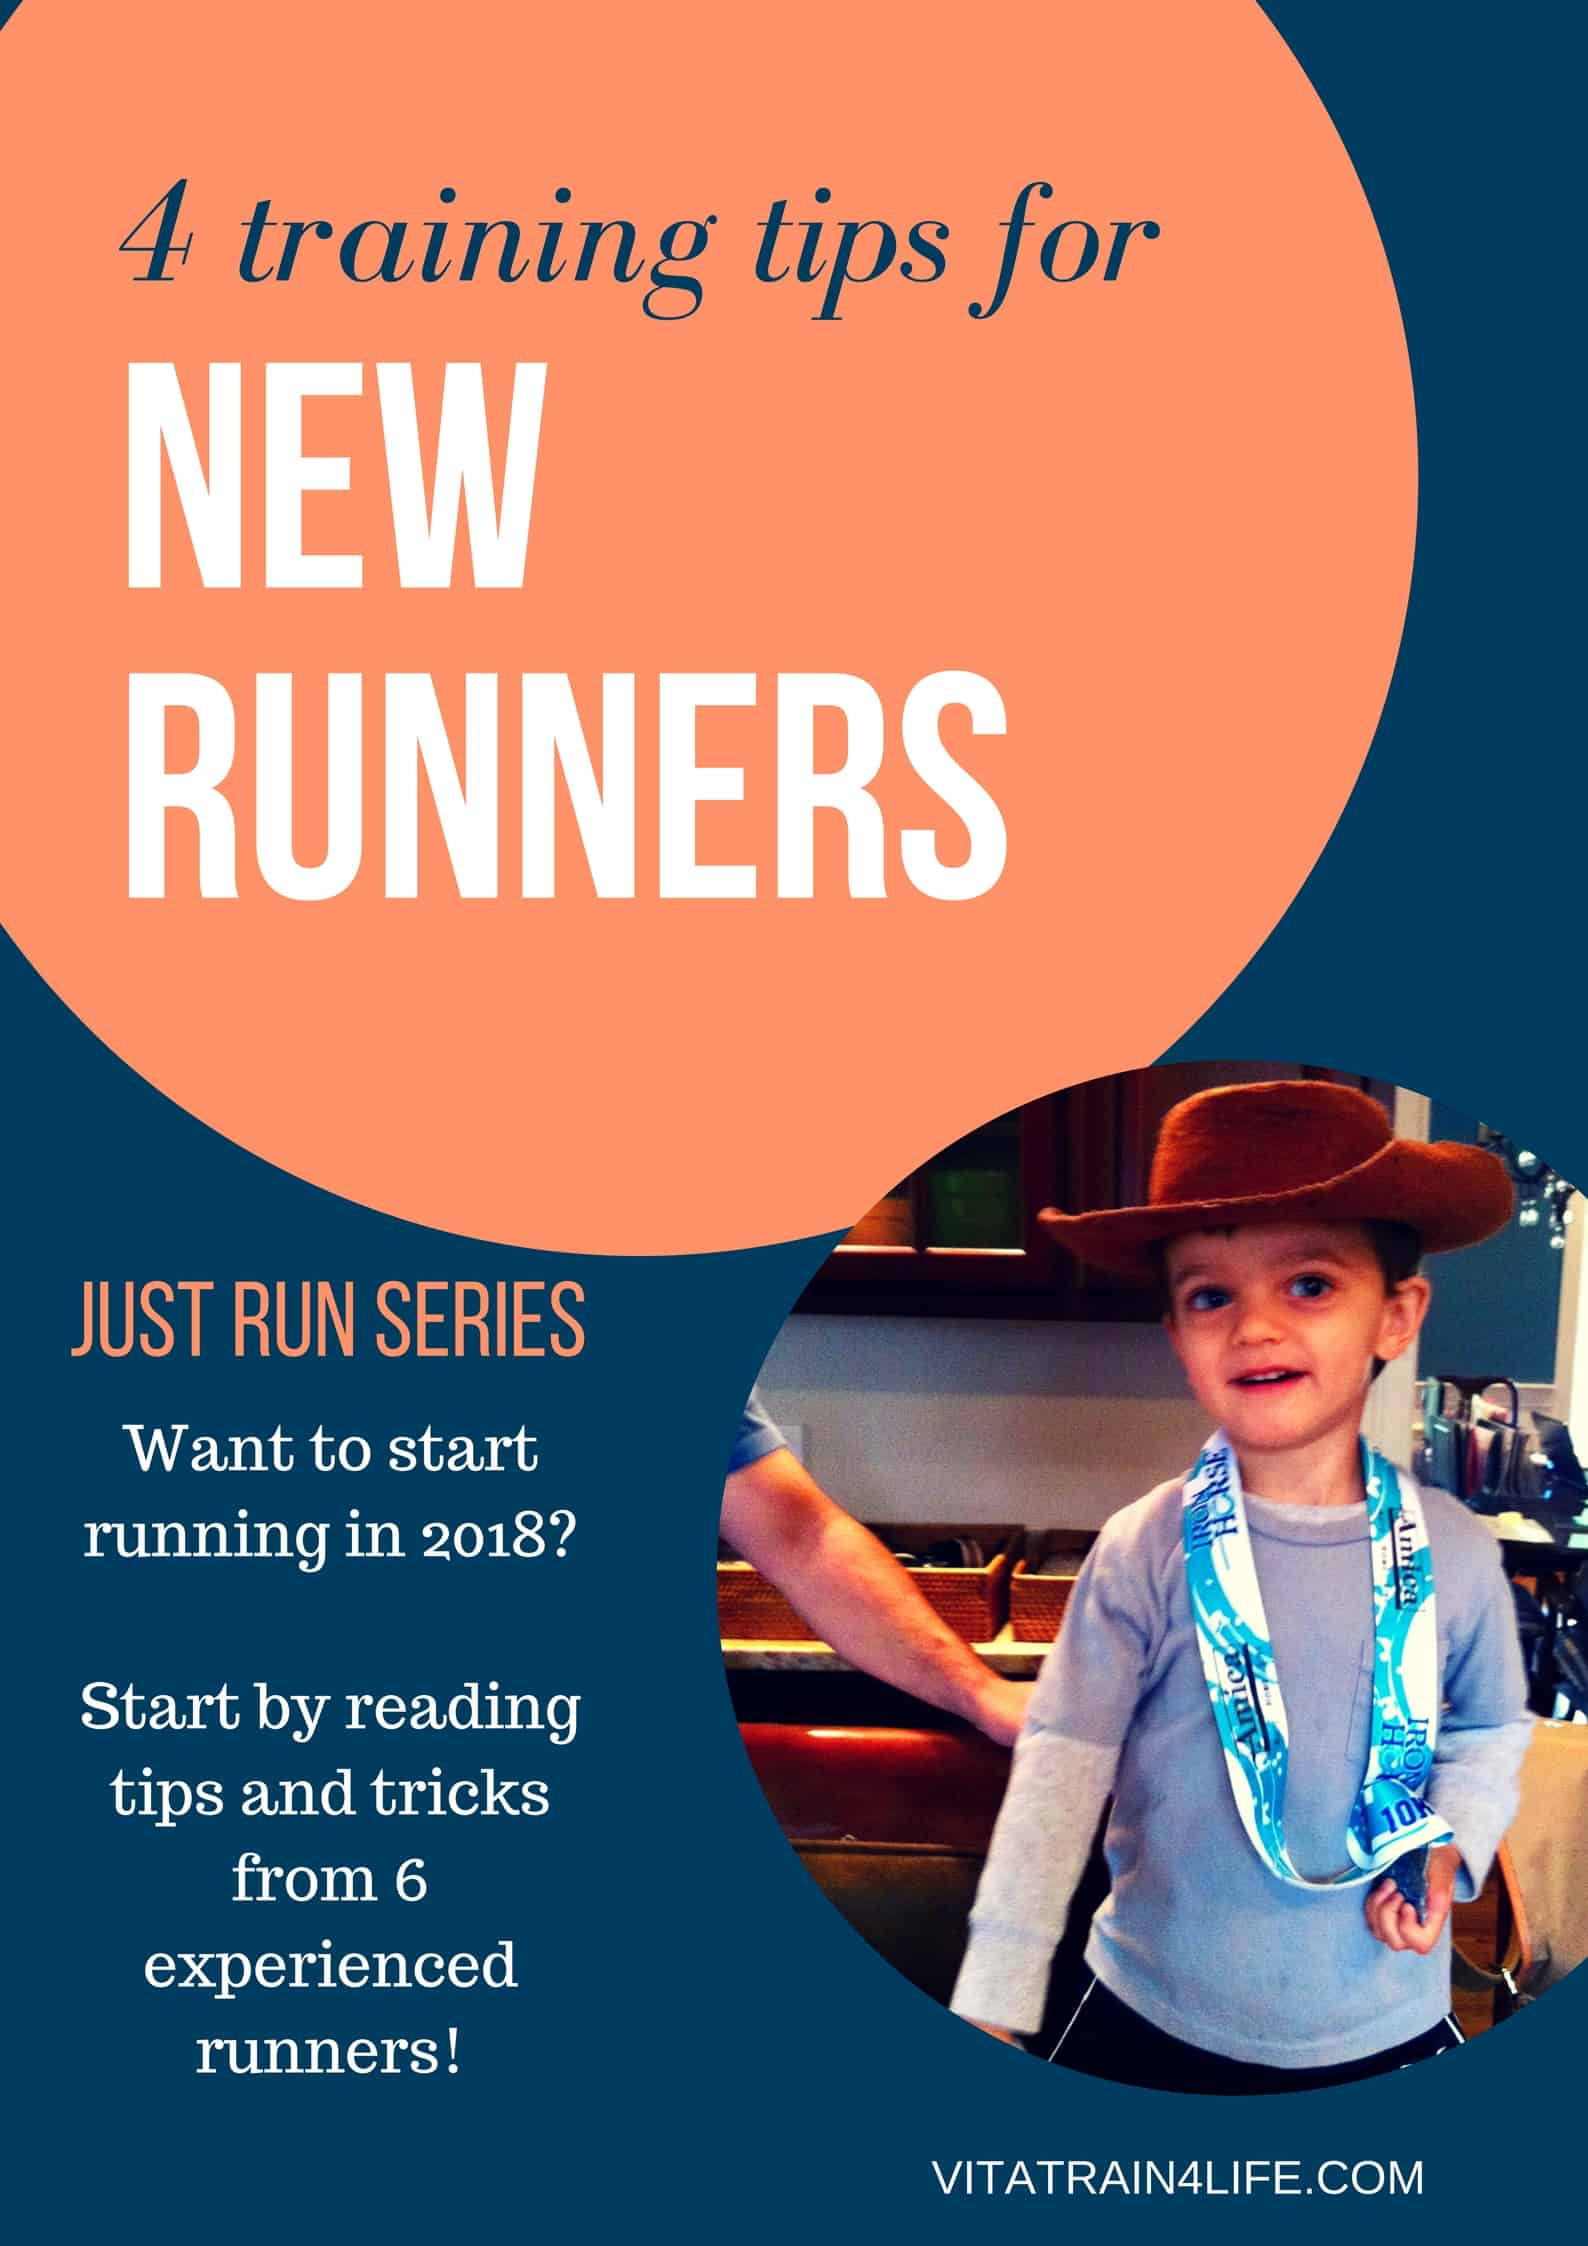 Starting out on a brand new running journey can be hard, Check out my 5 Unconventional Tips for new runners that I wish someone had told me!